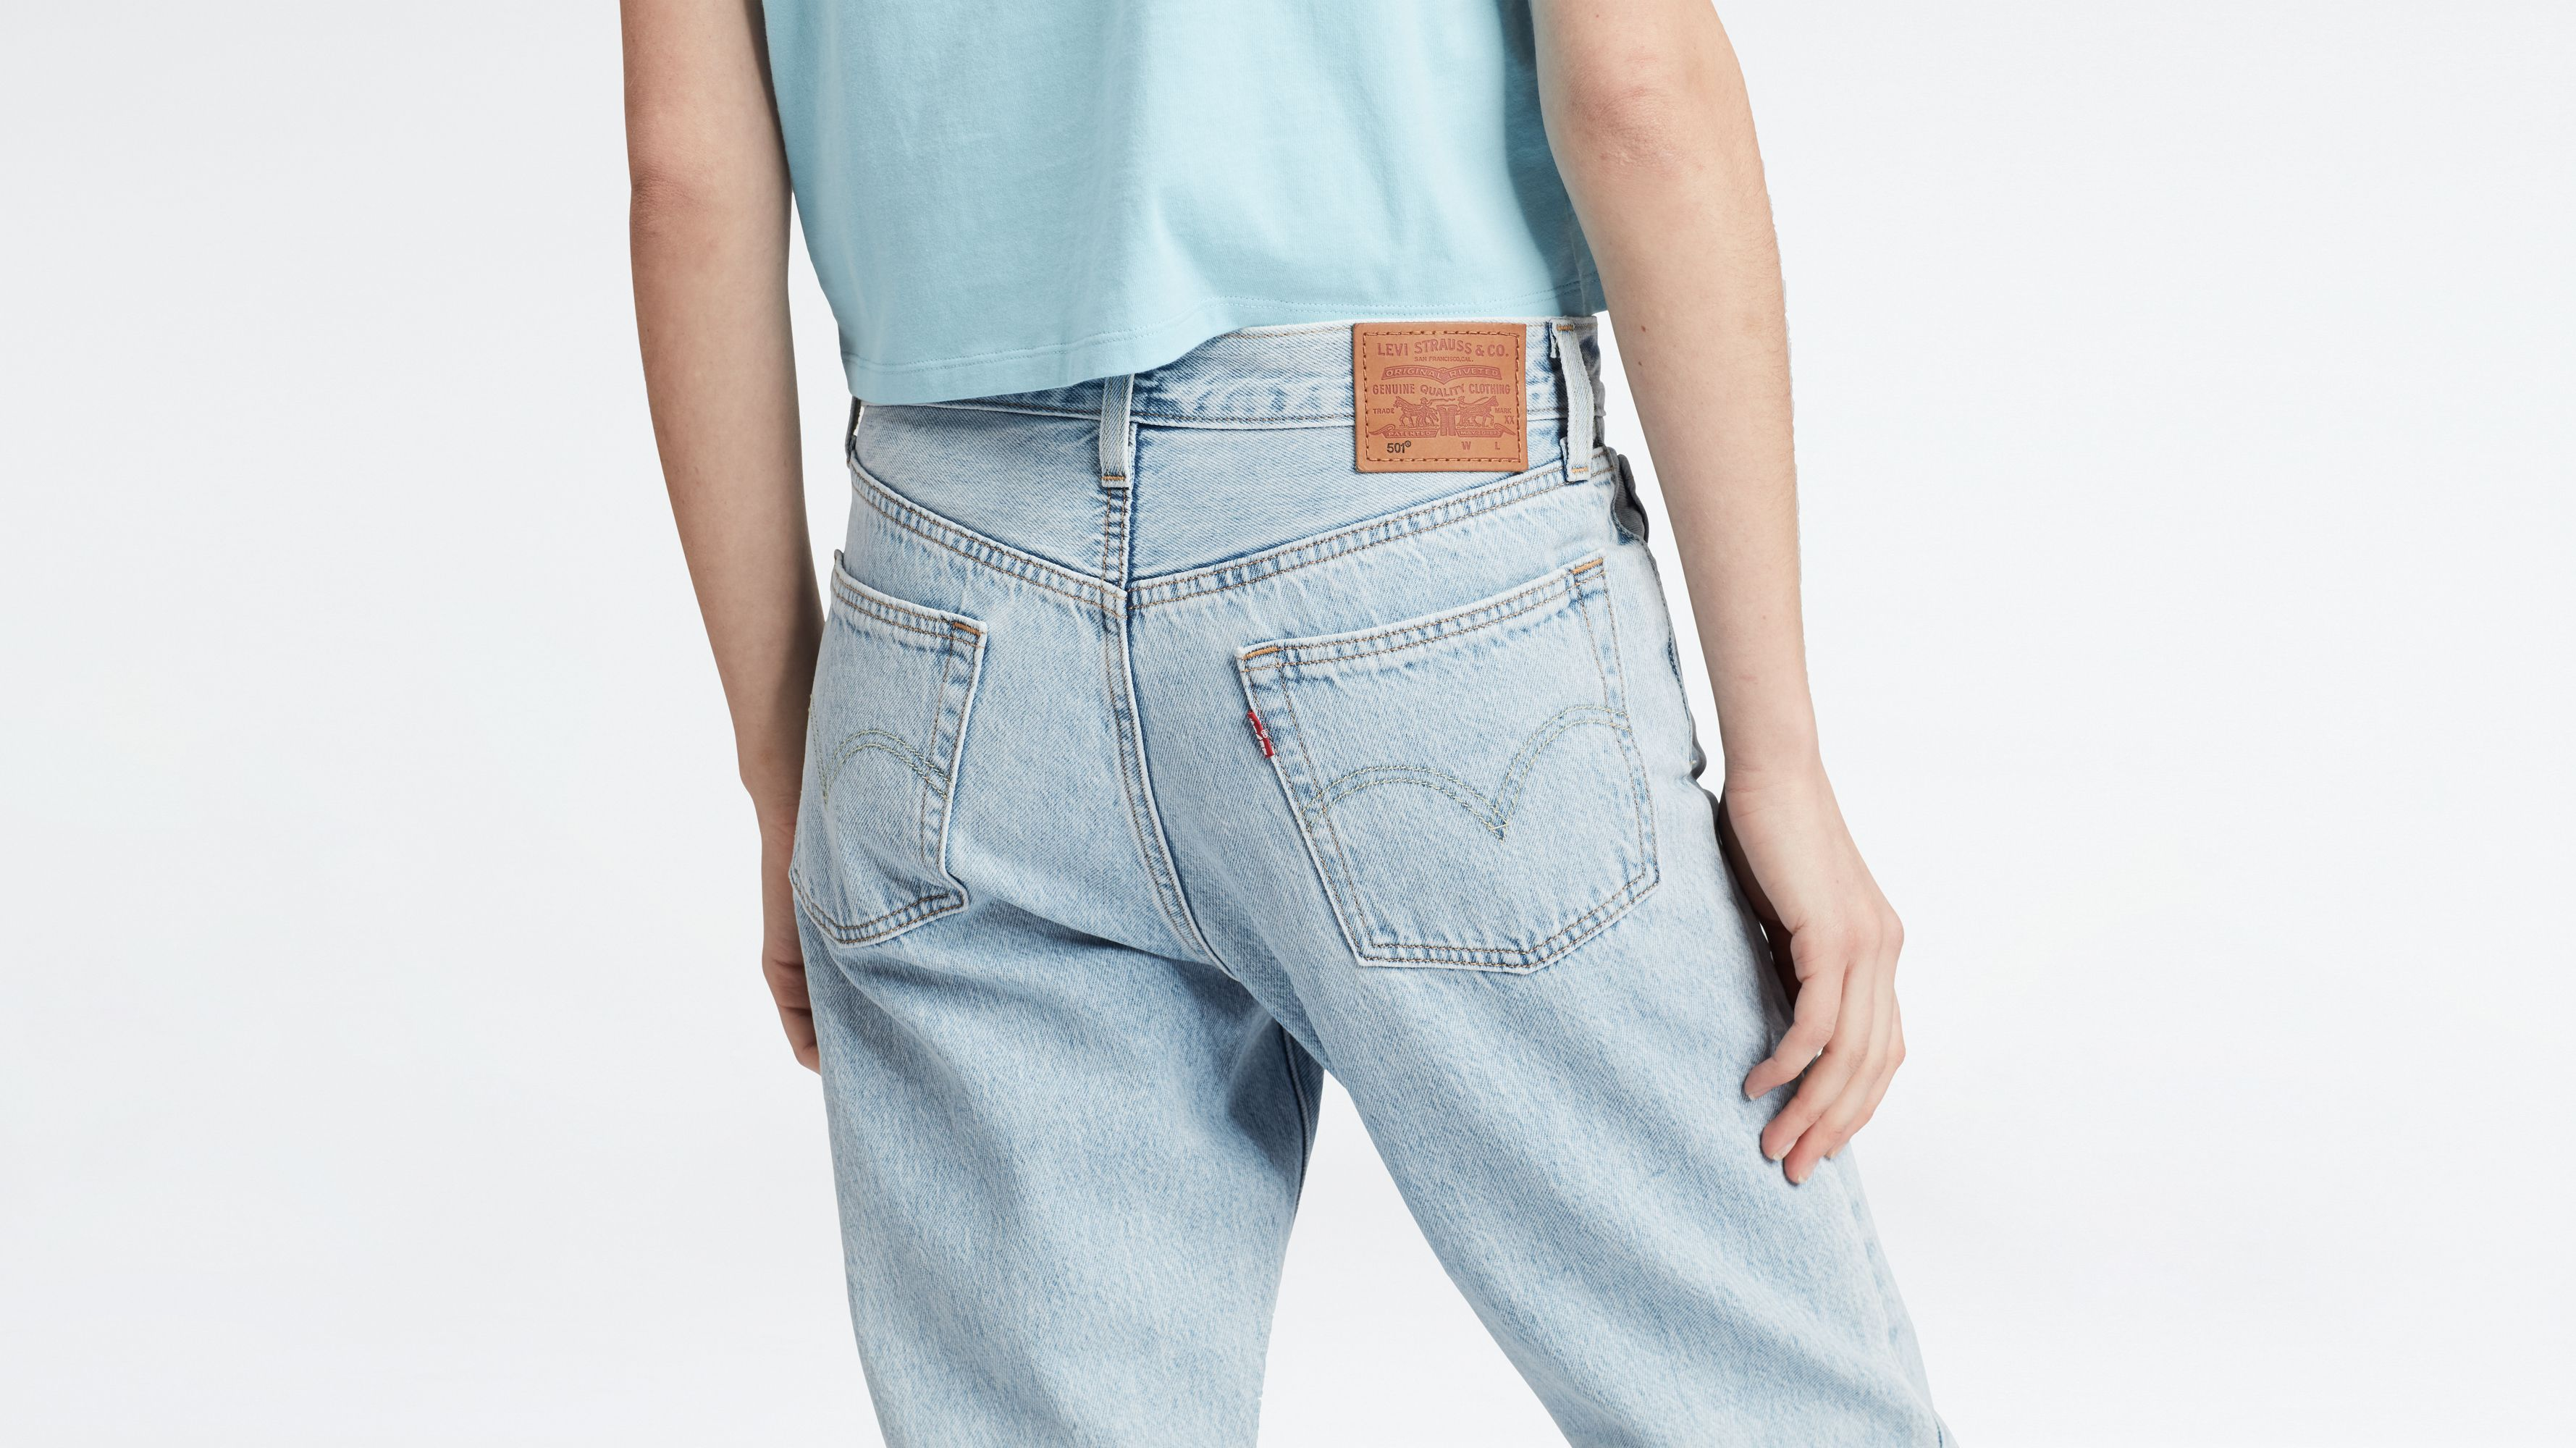 Levis 501 ct jeans price in, Levi's® Straight Leg Jeans